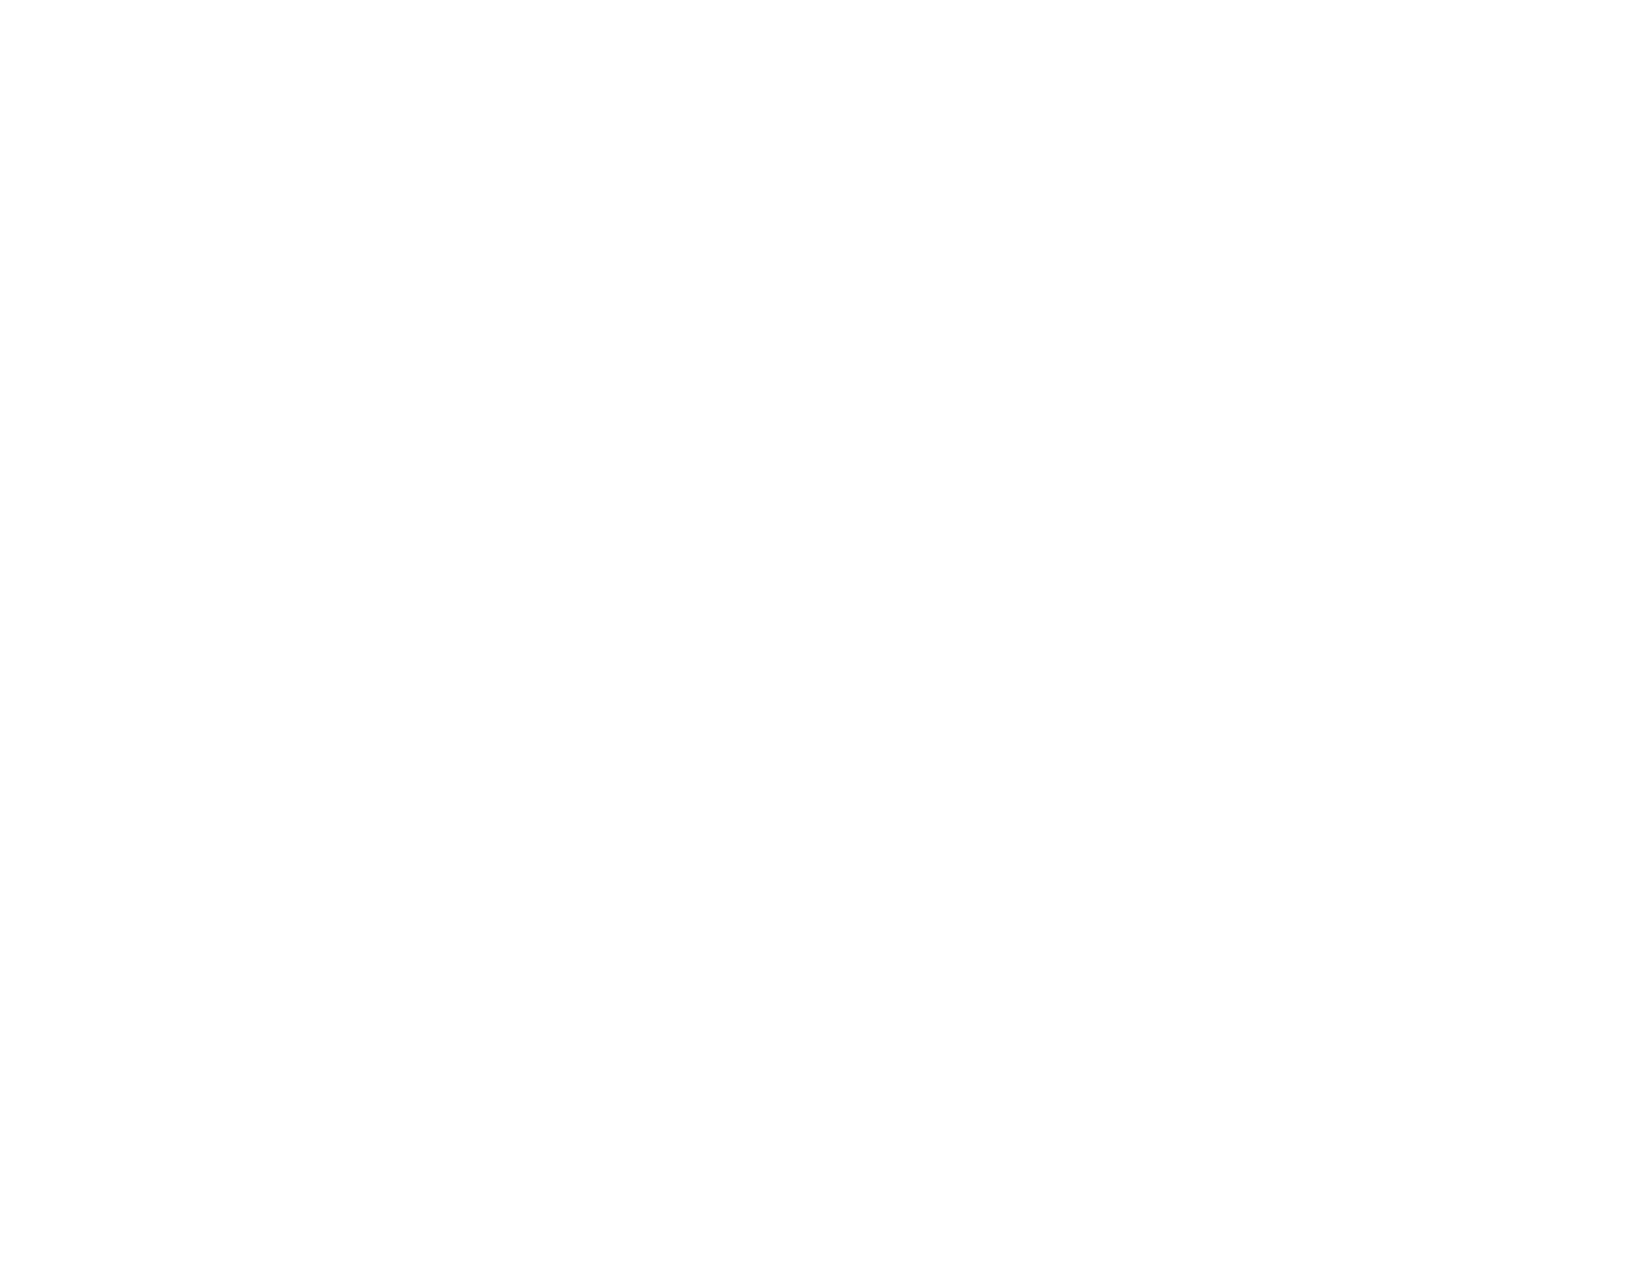 3 Points in Space Media Ground School